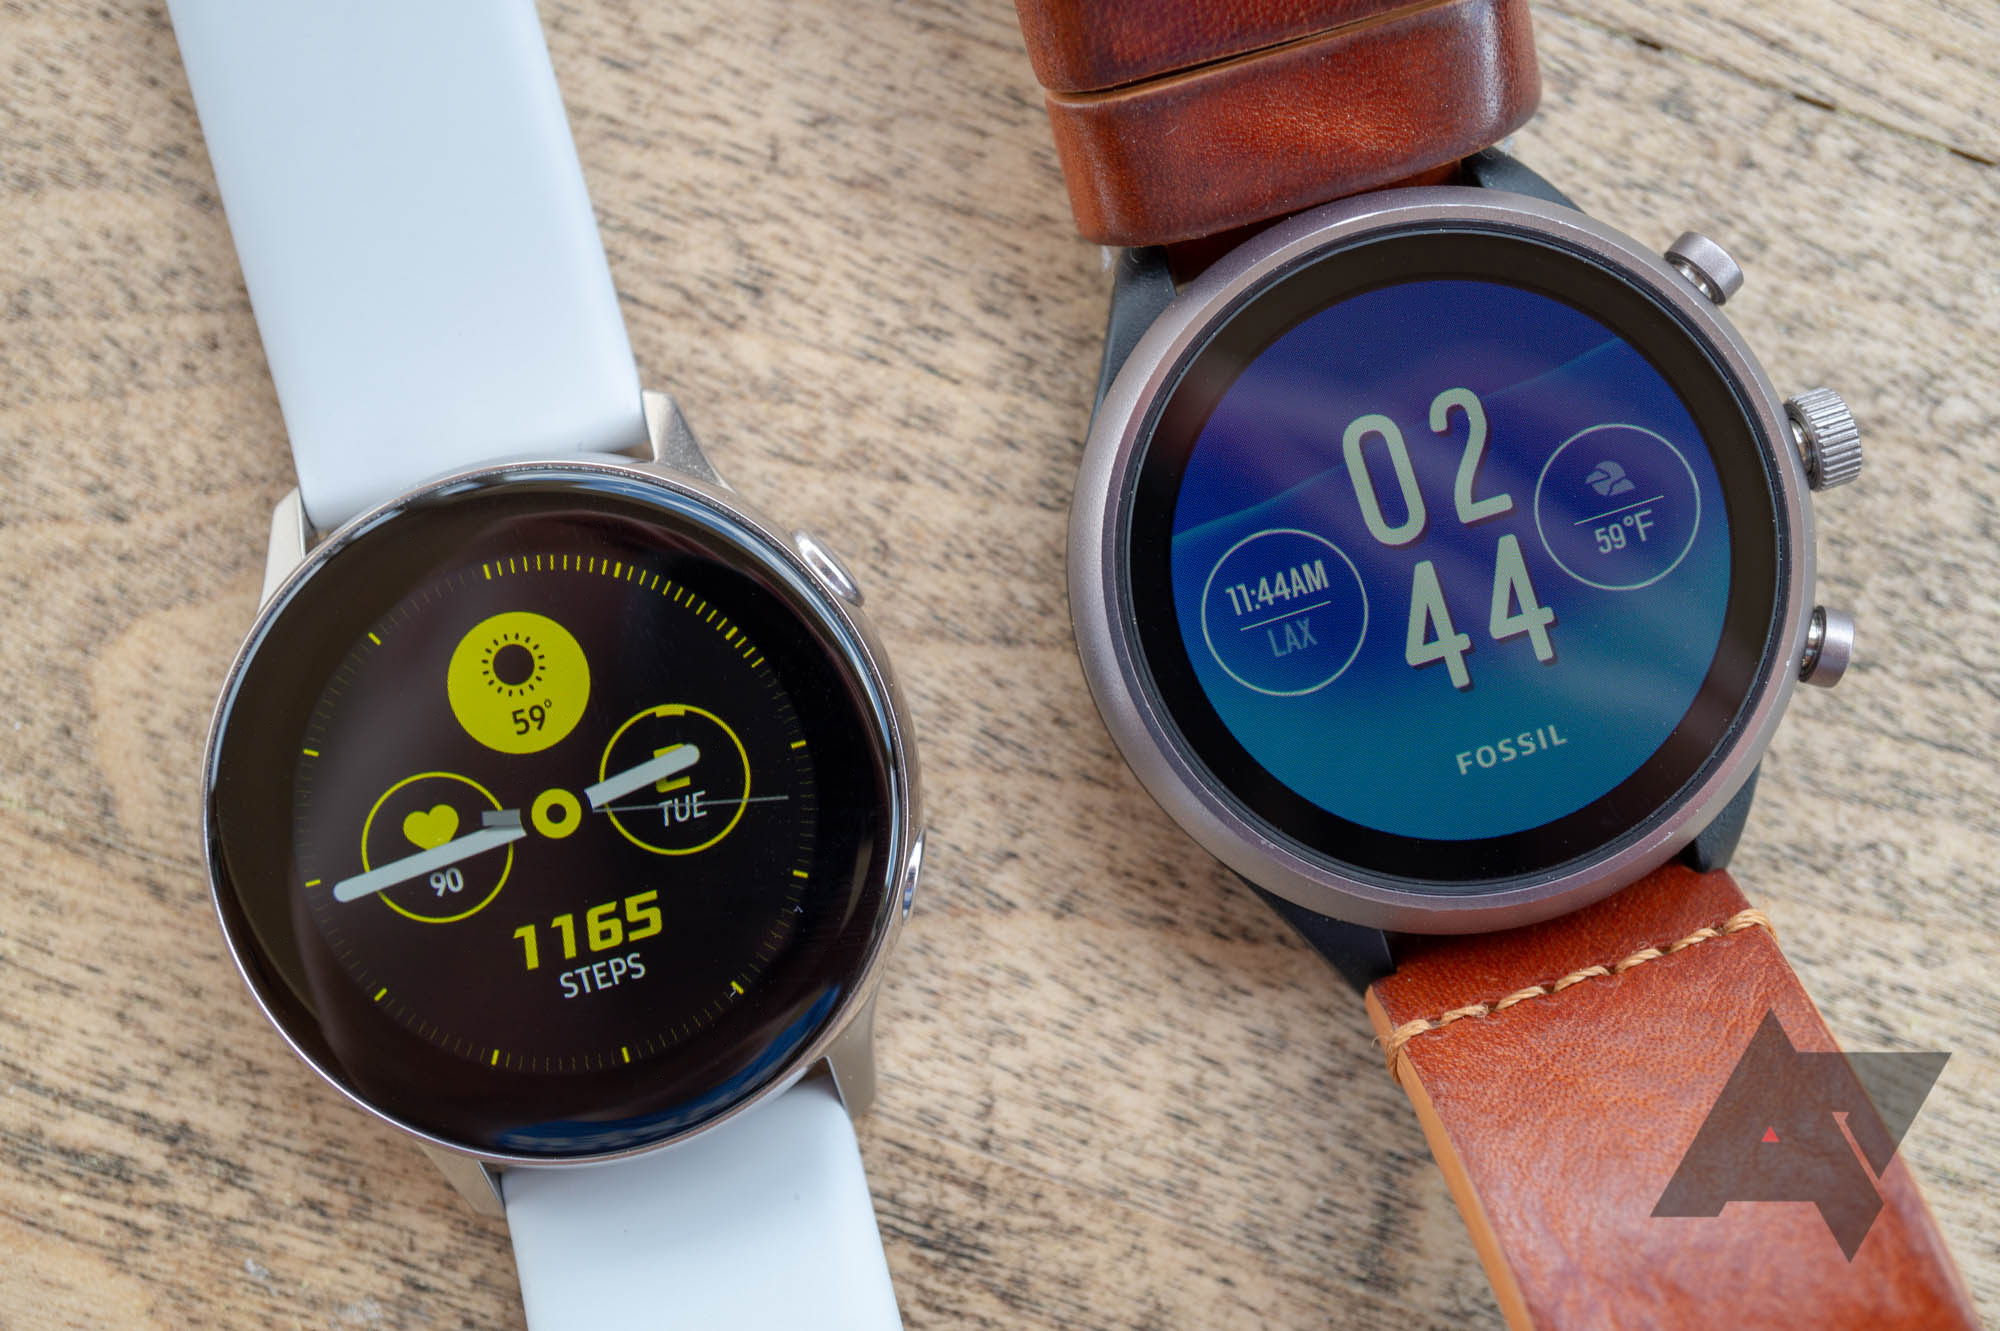 Samsung's Galaxy Watch Active is a great smartwatch, especially for $200